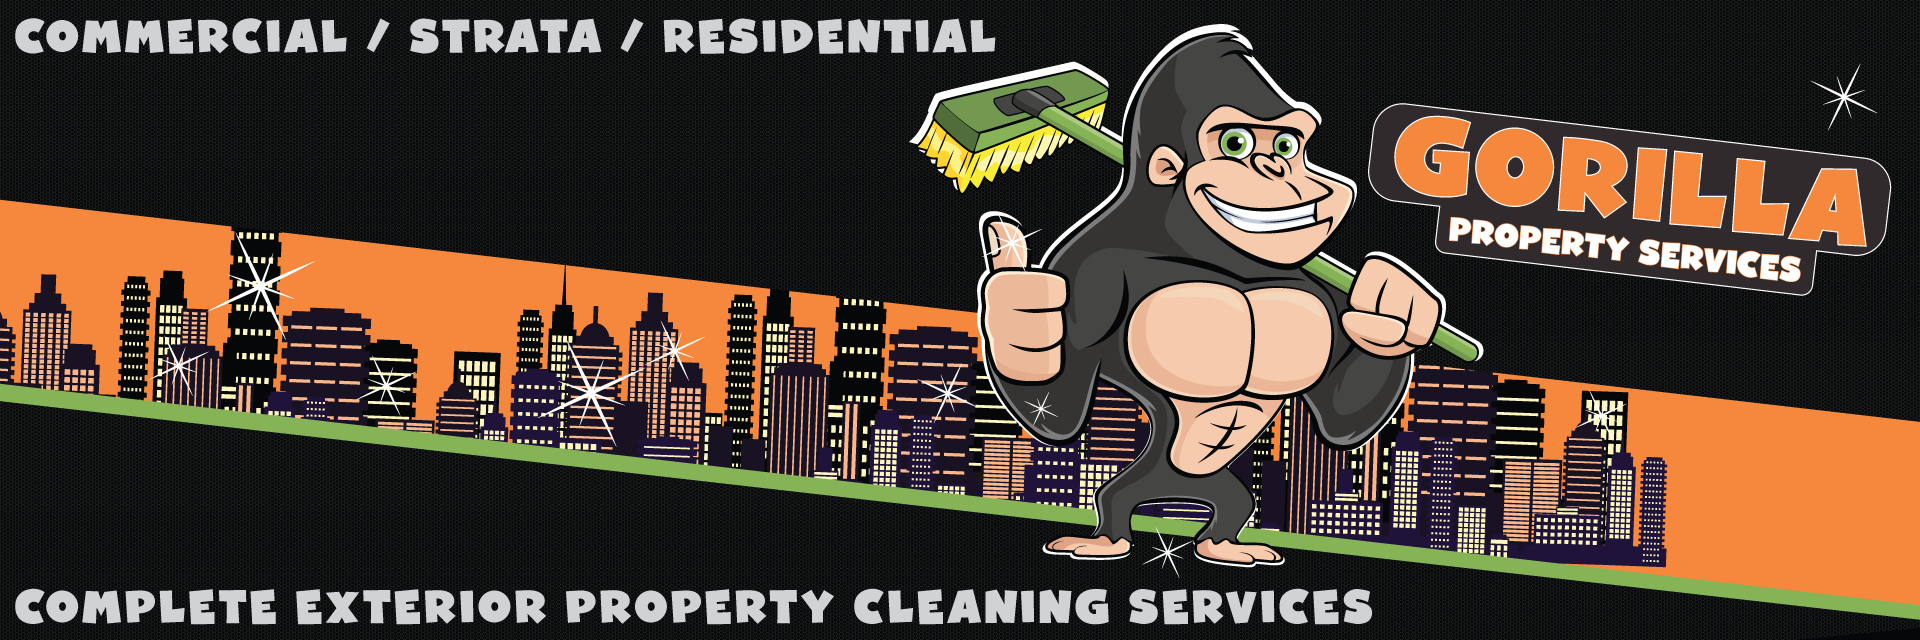 Gorilla Property Services large banner